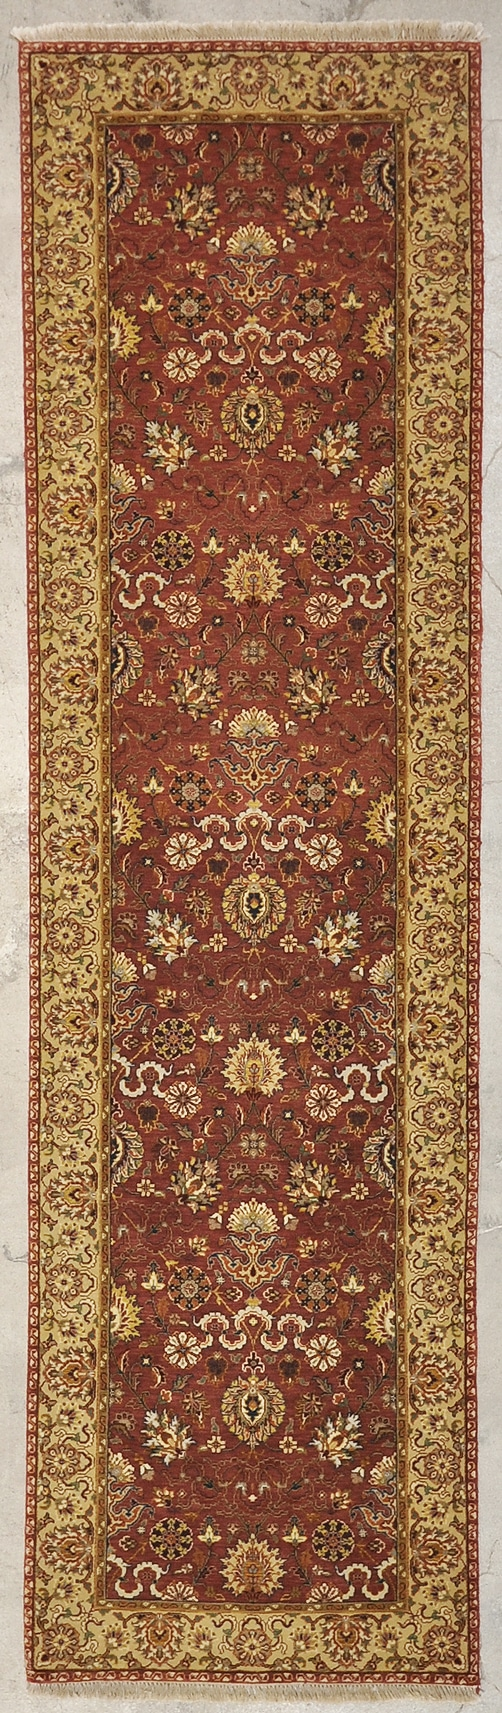 Finest Mughal Agra Rug rugs and more oriental carpet 43560-1